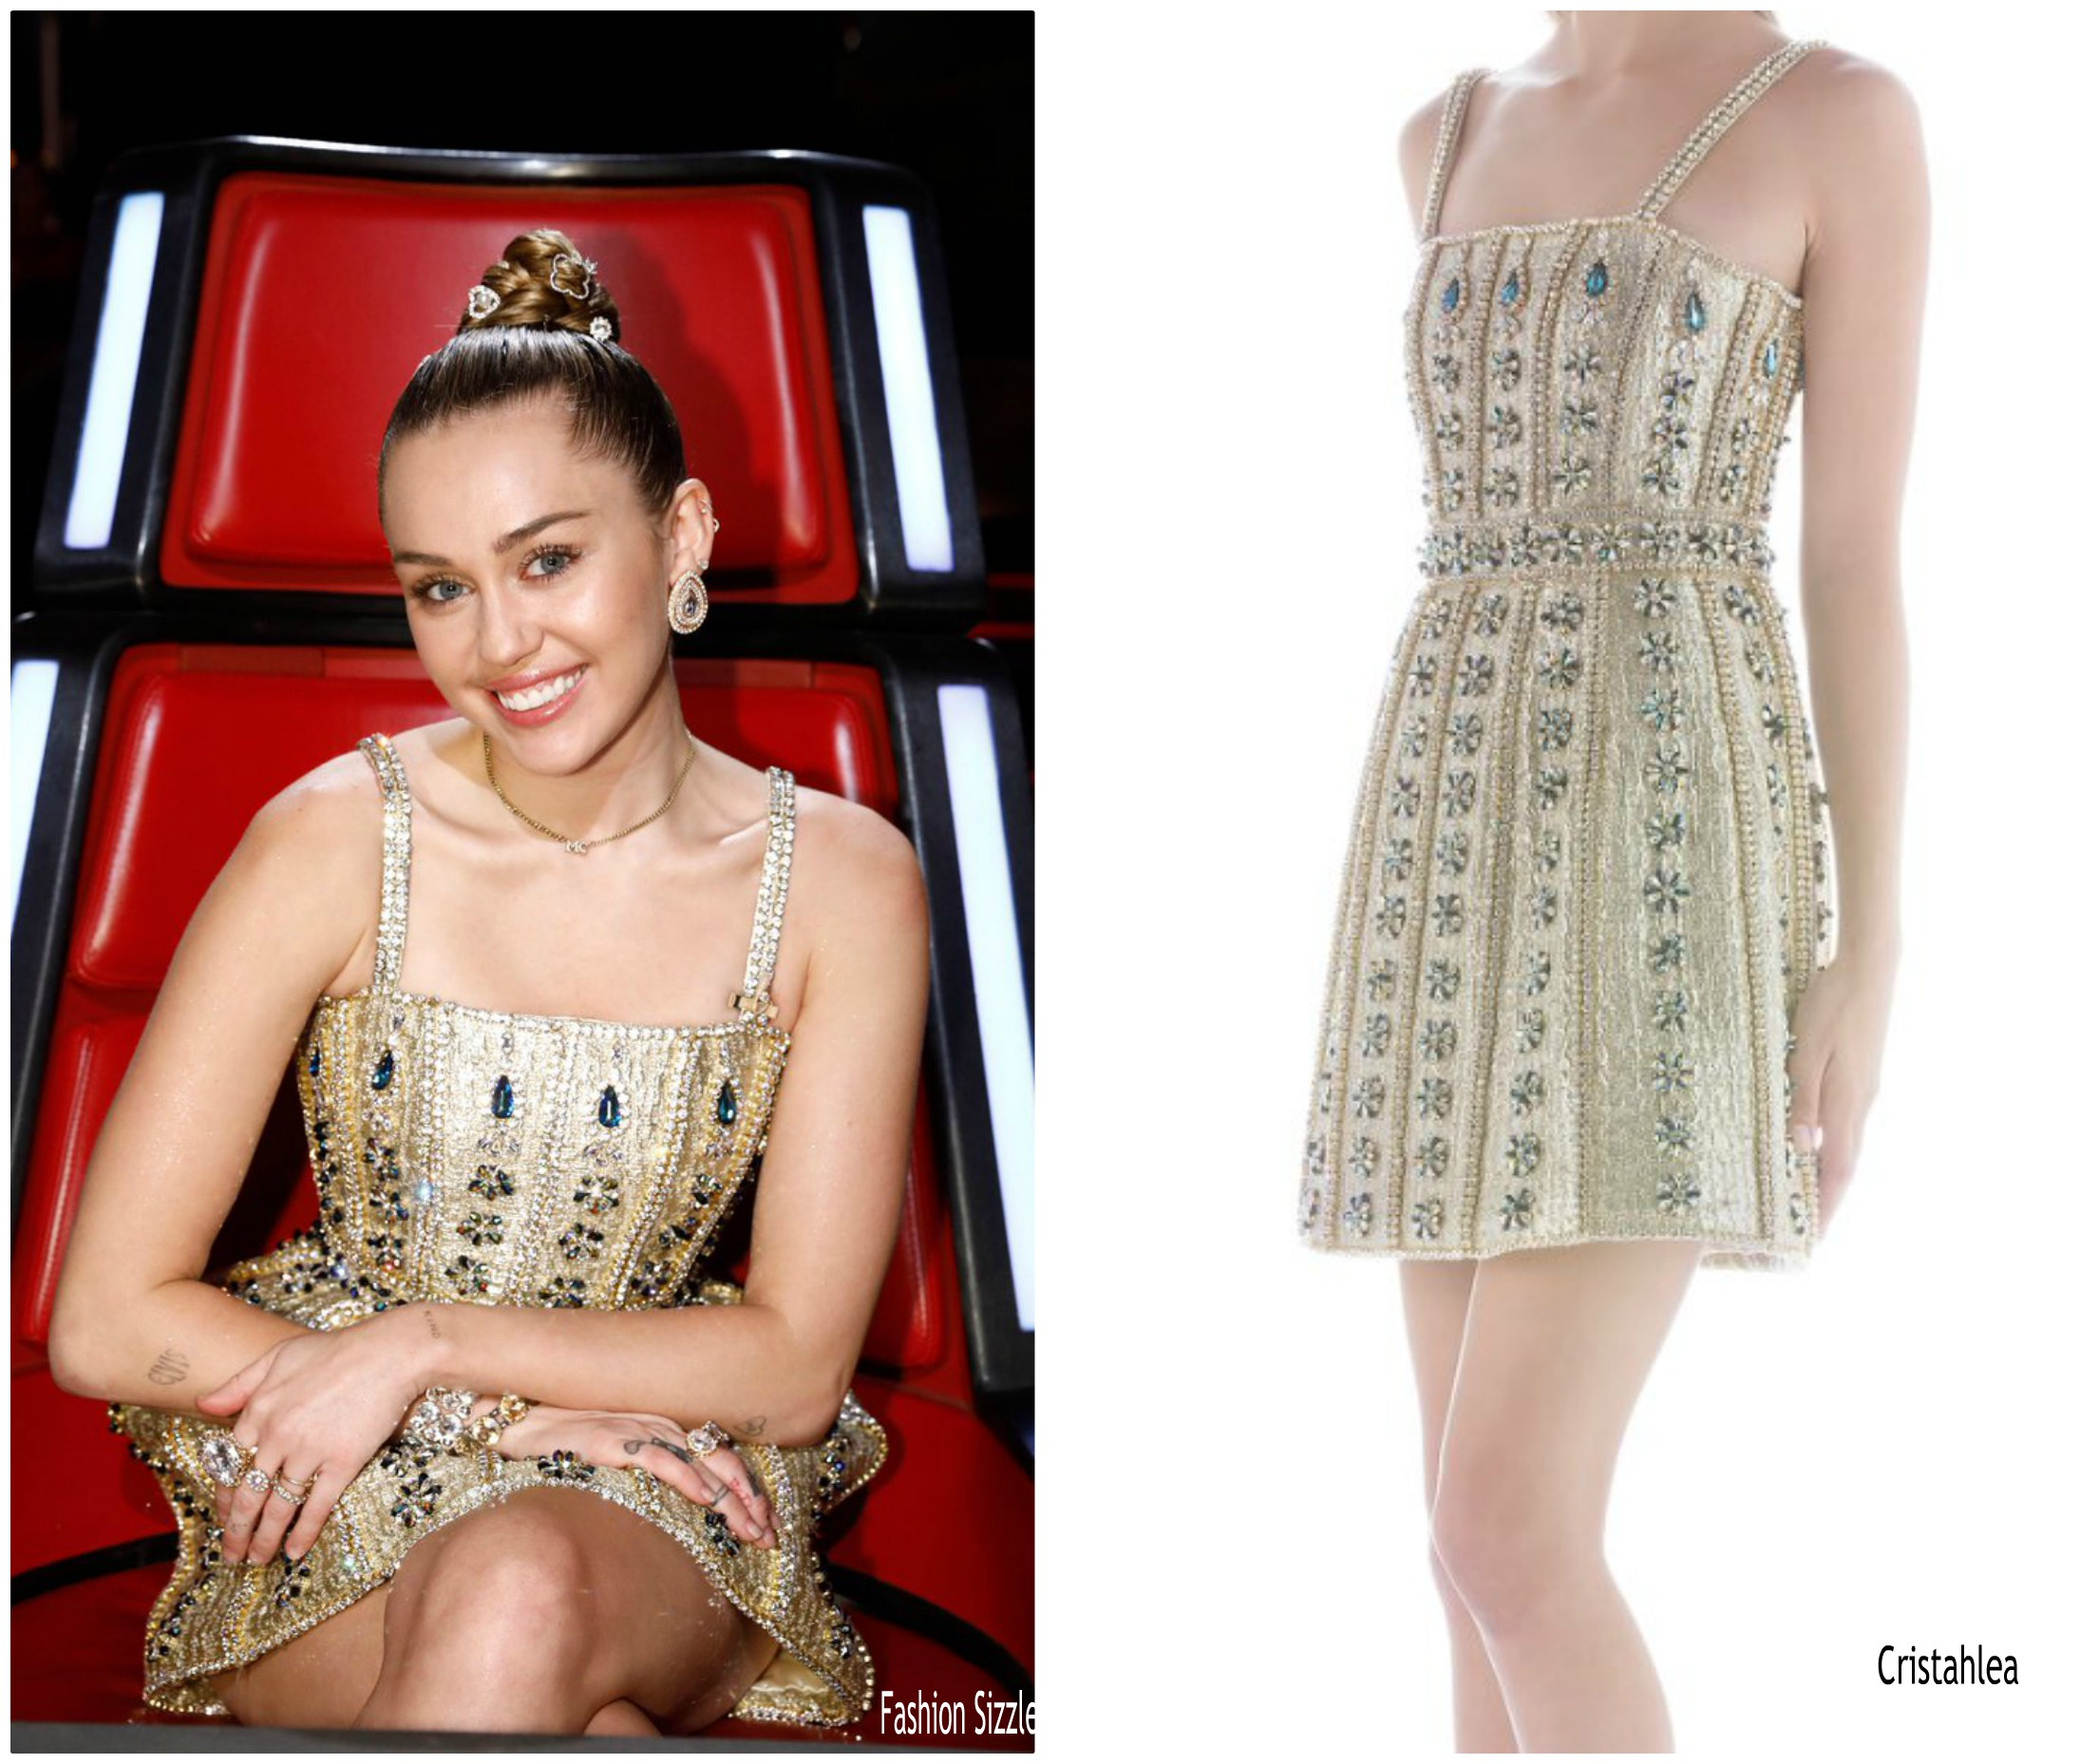 miley-cyrus-in-cristahlea-the-voice-semi-finale